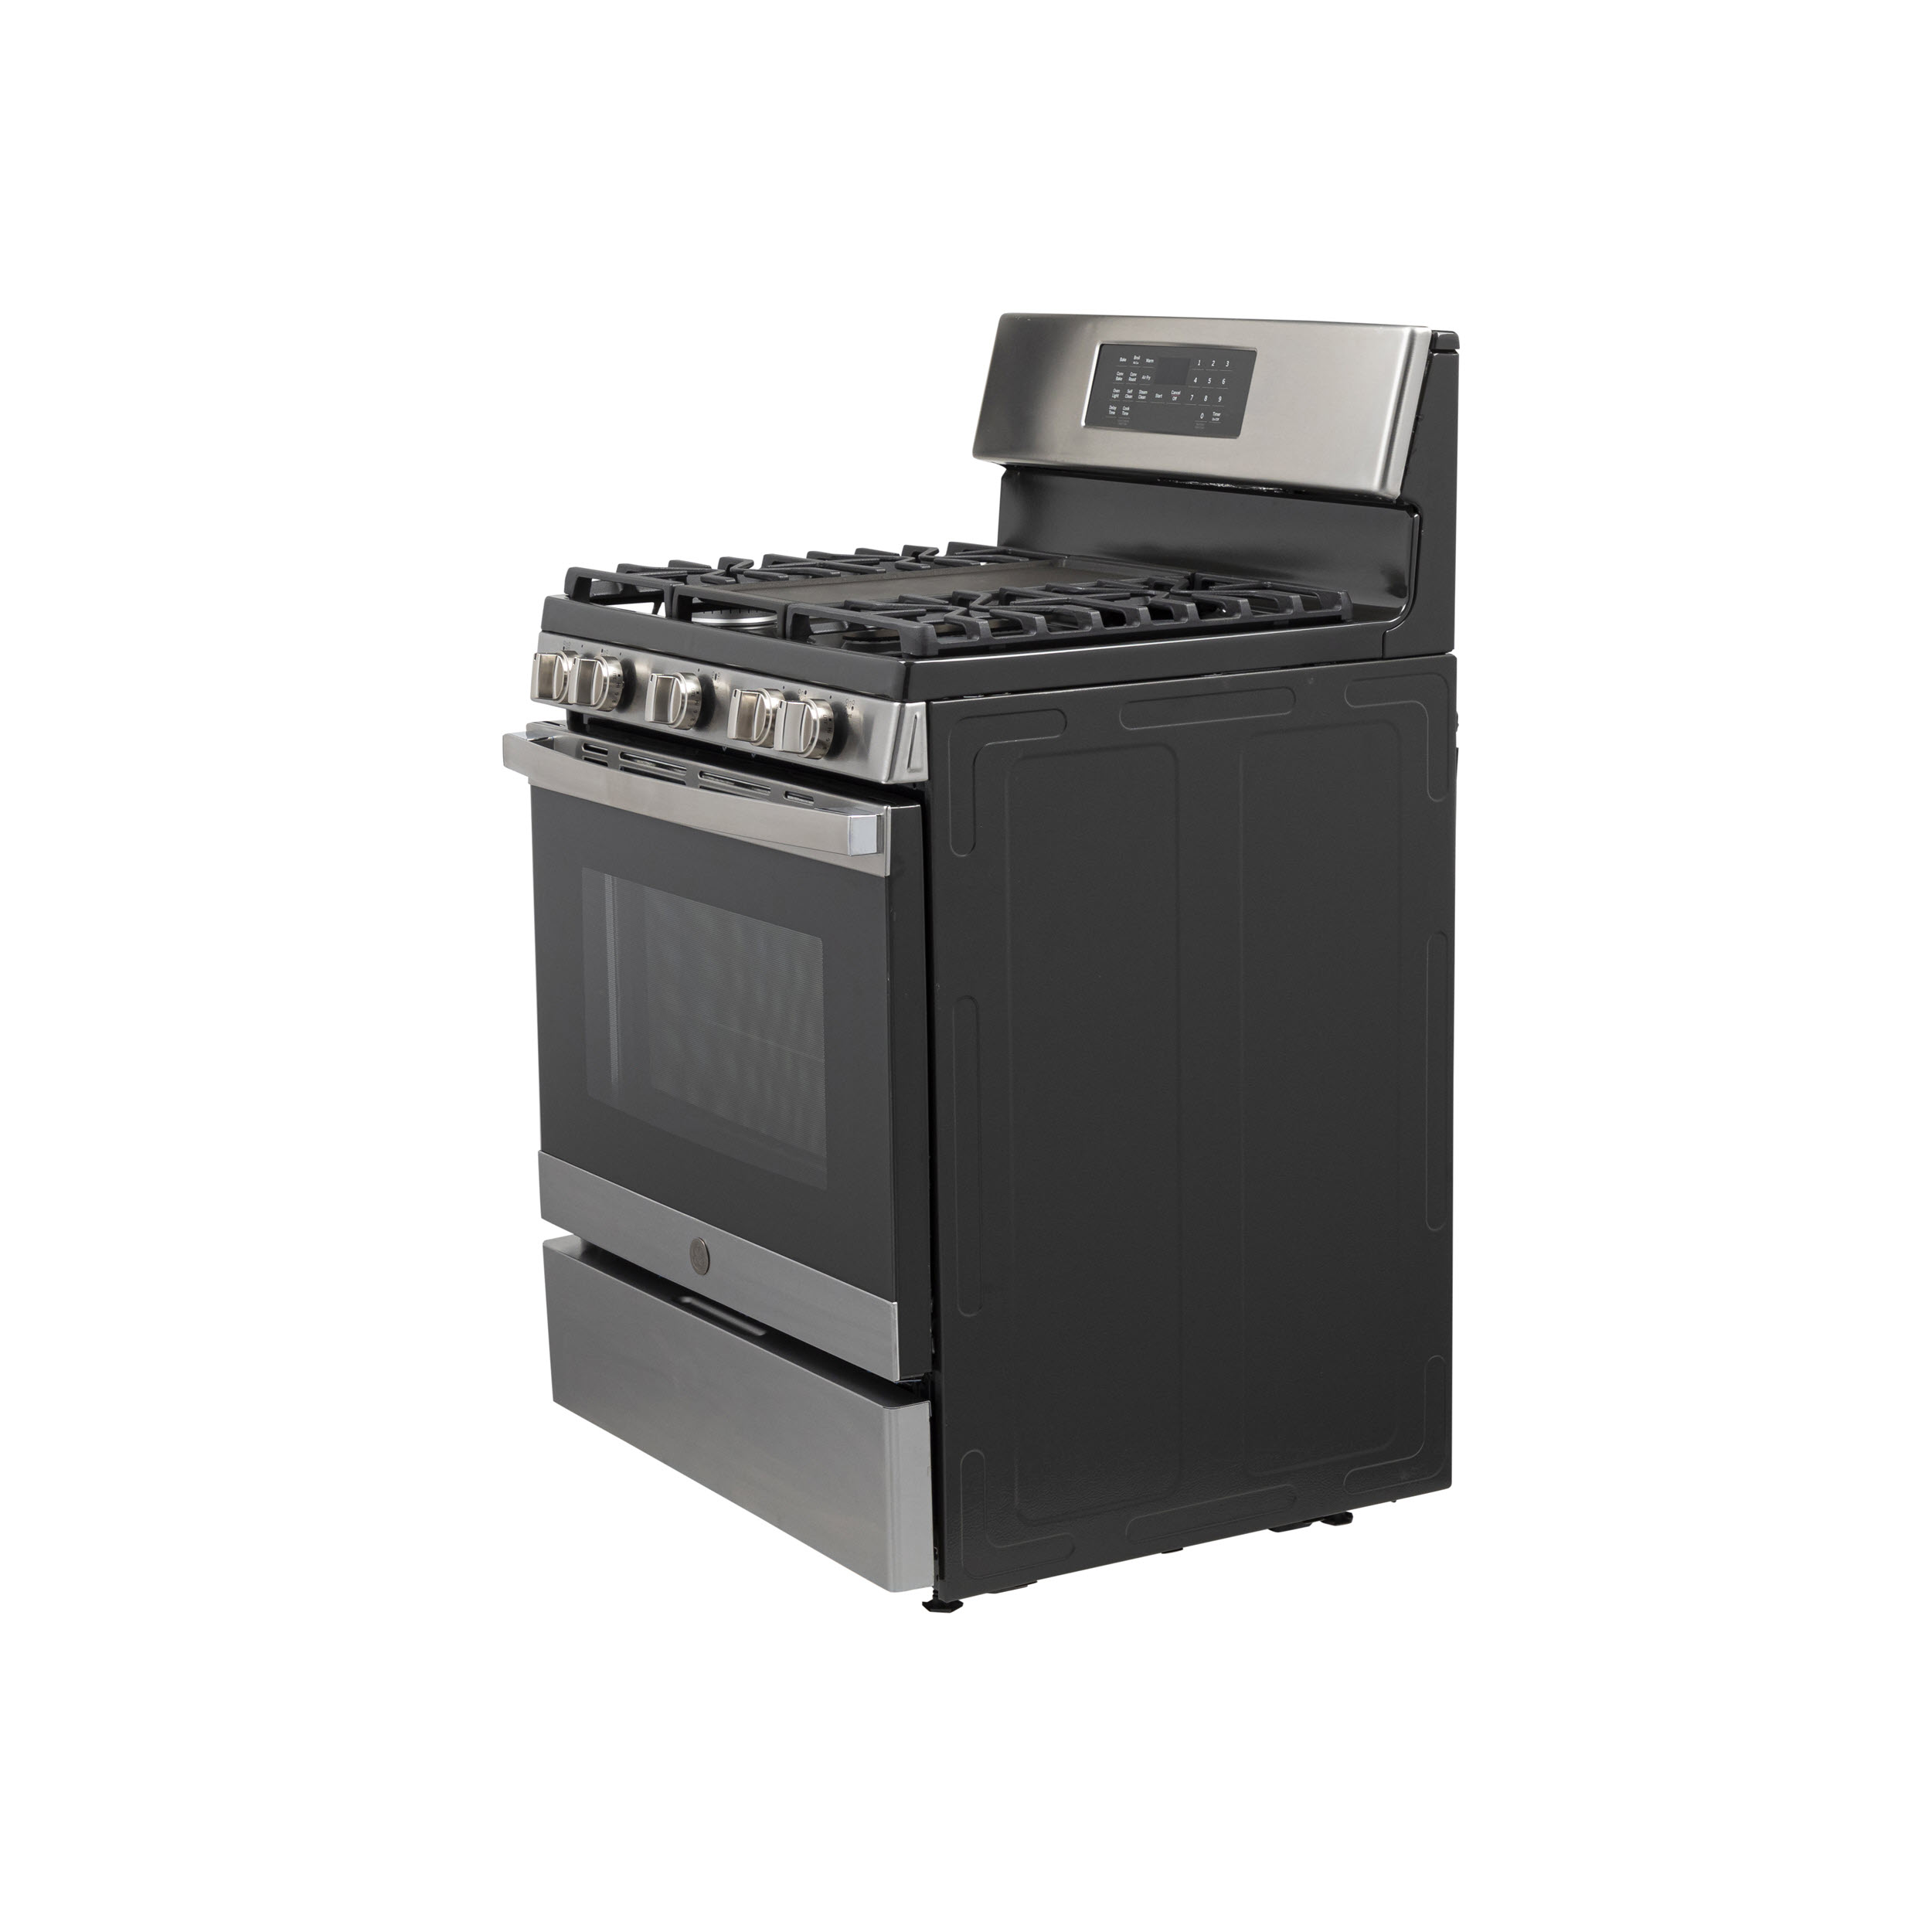 "Model: JGB735SPSS | GE GE® 30"" Free-Standing Gas Convection Range with No Preheat Air Fry"